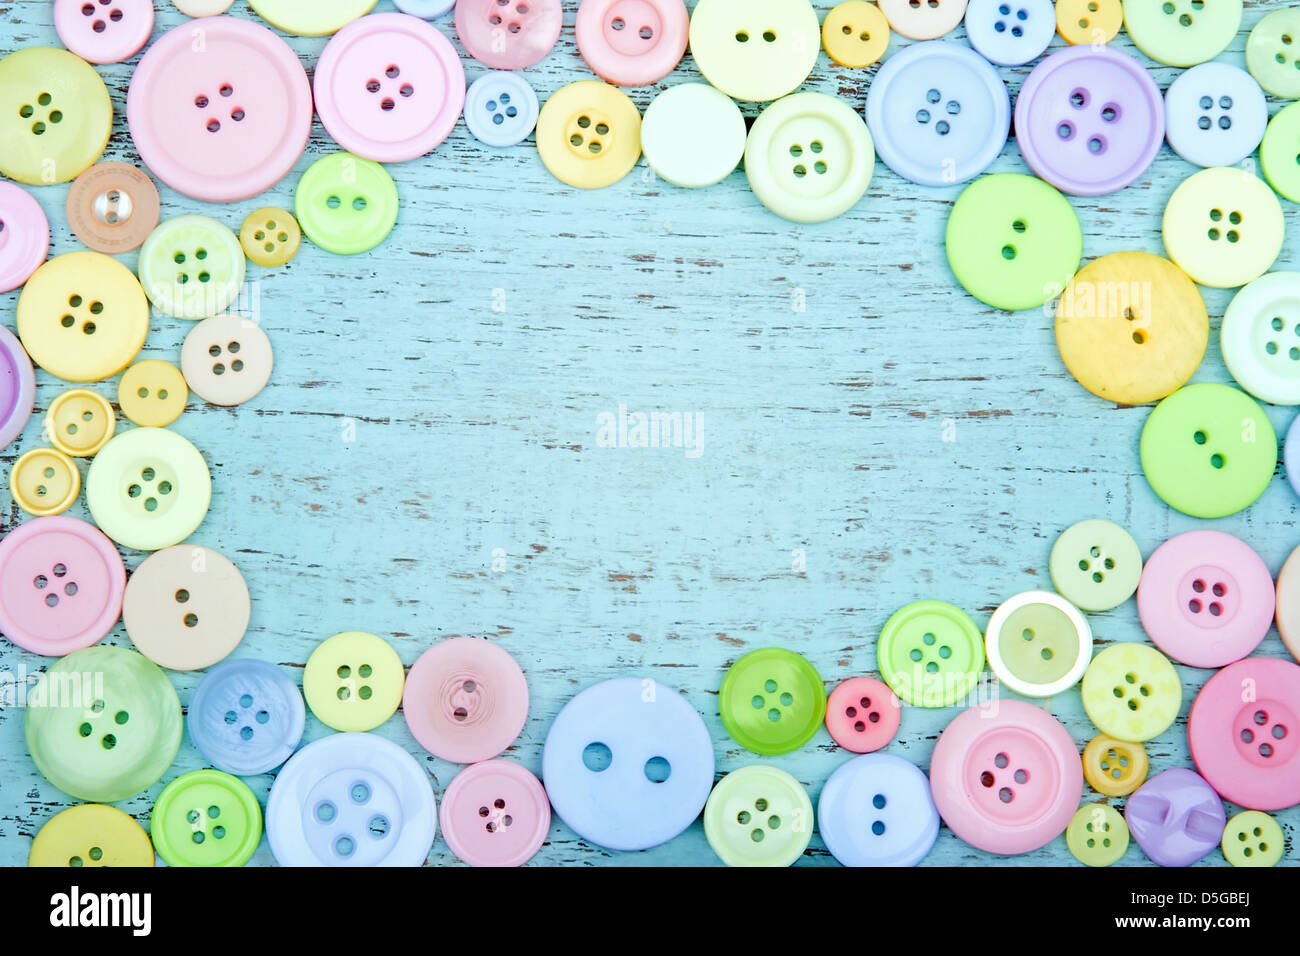 Pastel Color Buttons On A Blue Wooden Shabby Chic Background